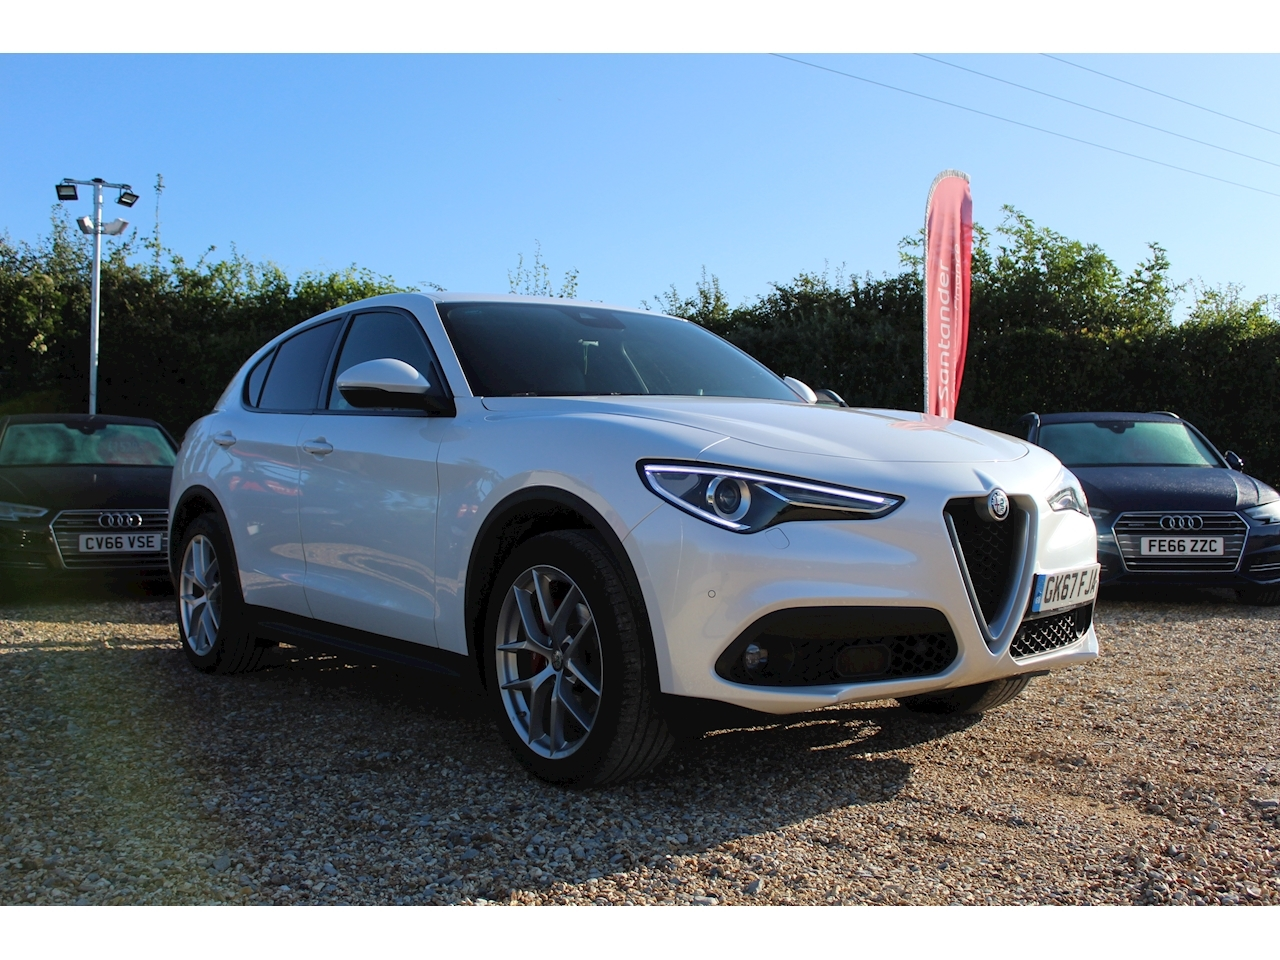 Alfa Romeo Stelvio Stelvio 2.2 Turbo Diesel 210hp Awd  Launch Edition Estate 2.2 Automatic Diesel